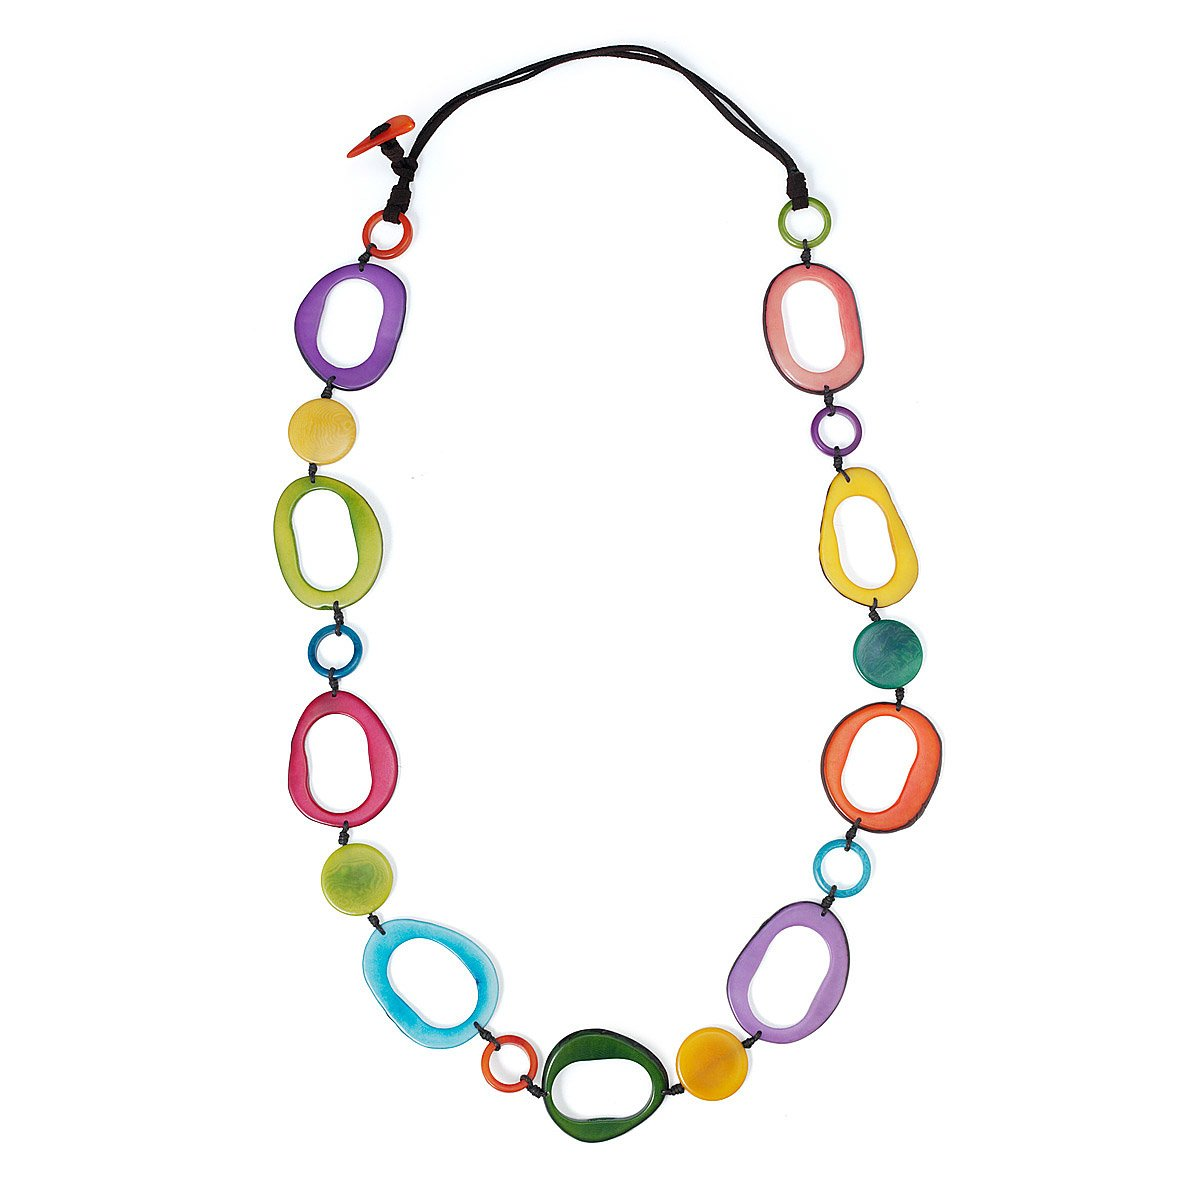 fairly fairtrade made lajuniper ethical tagua home product la geometric juniper of bright necklace